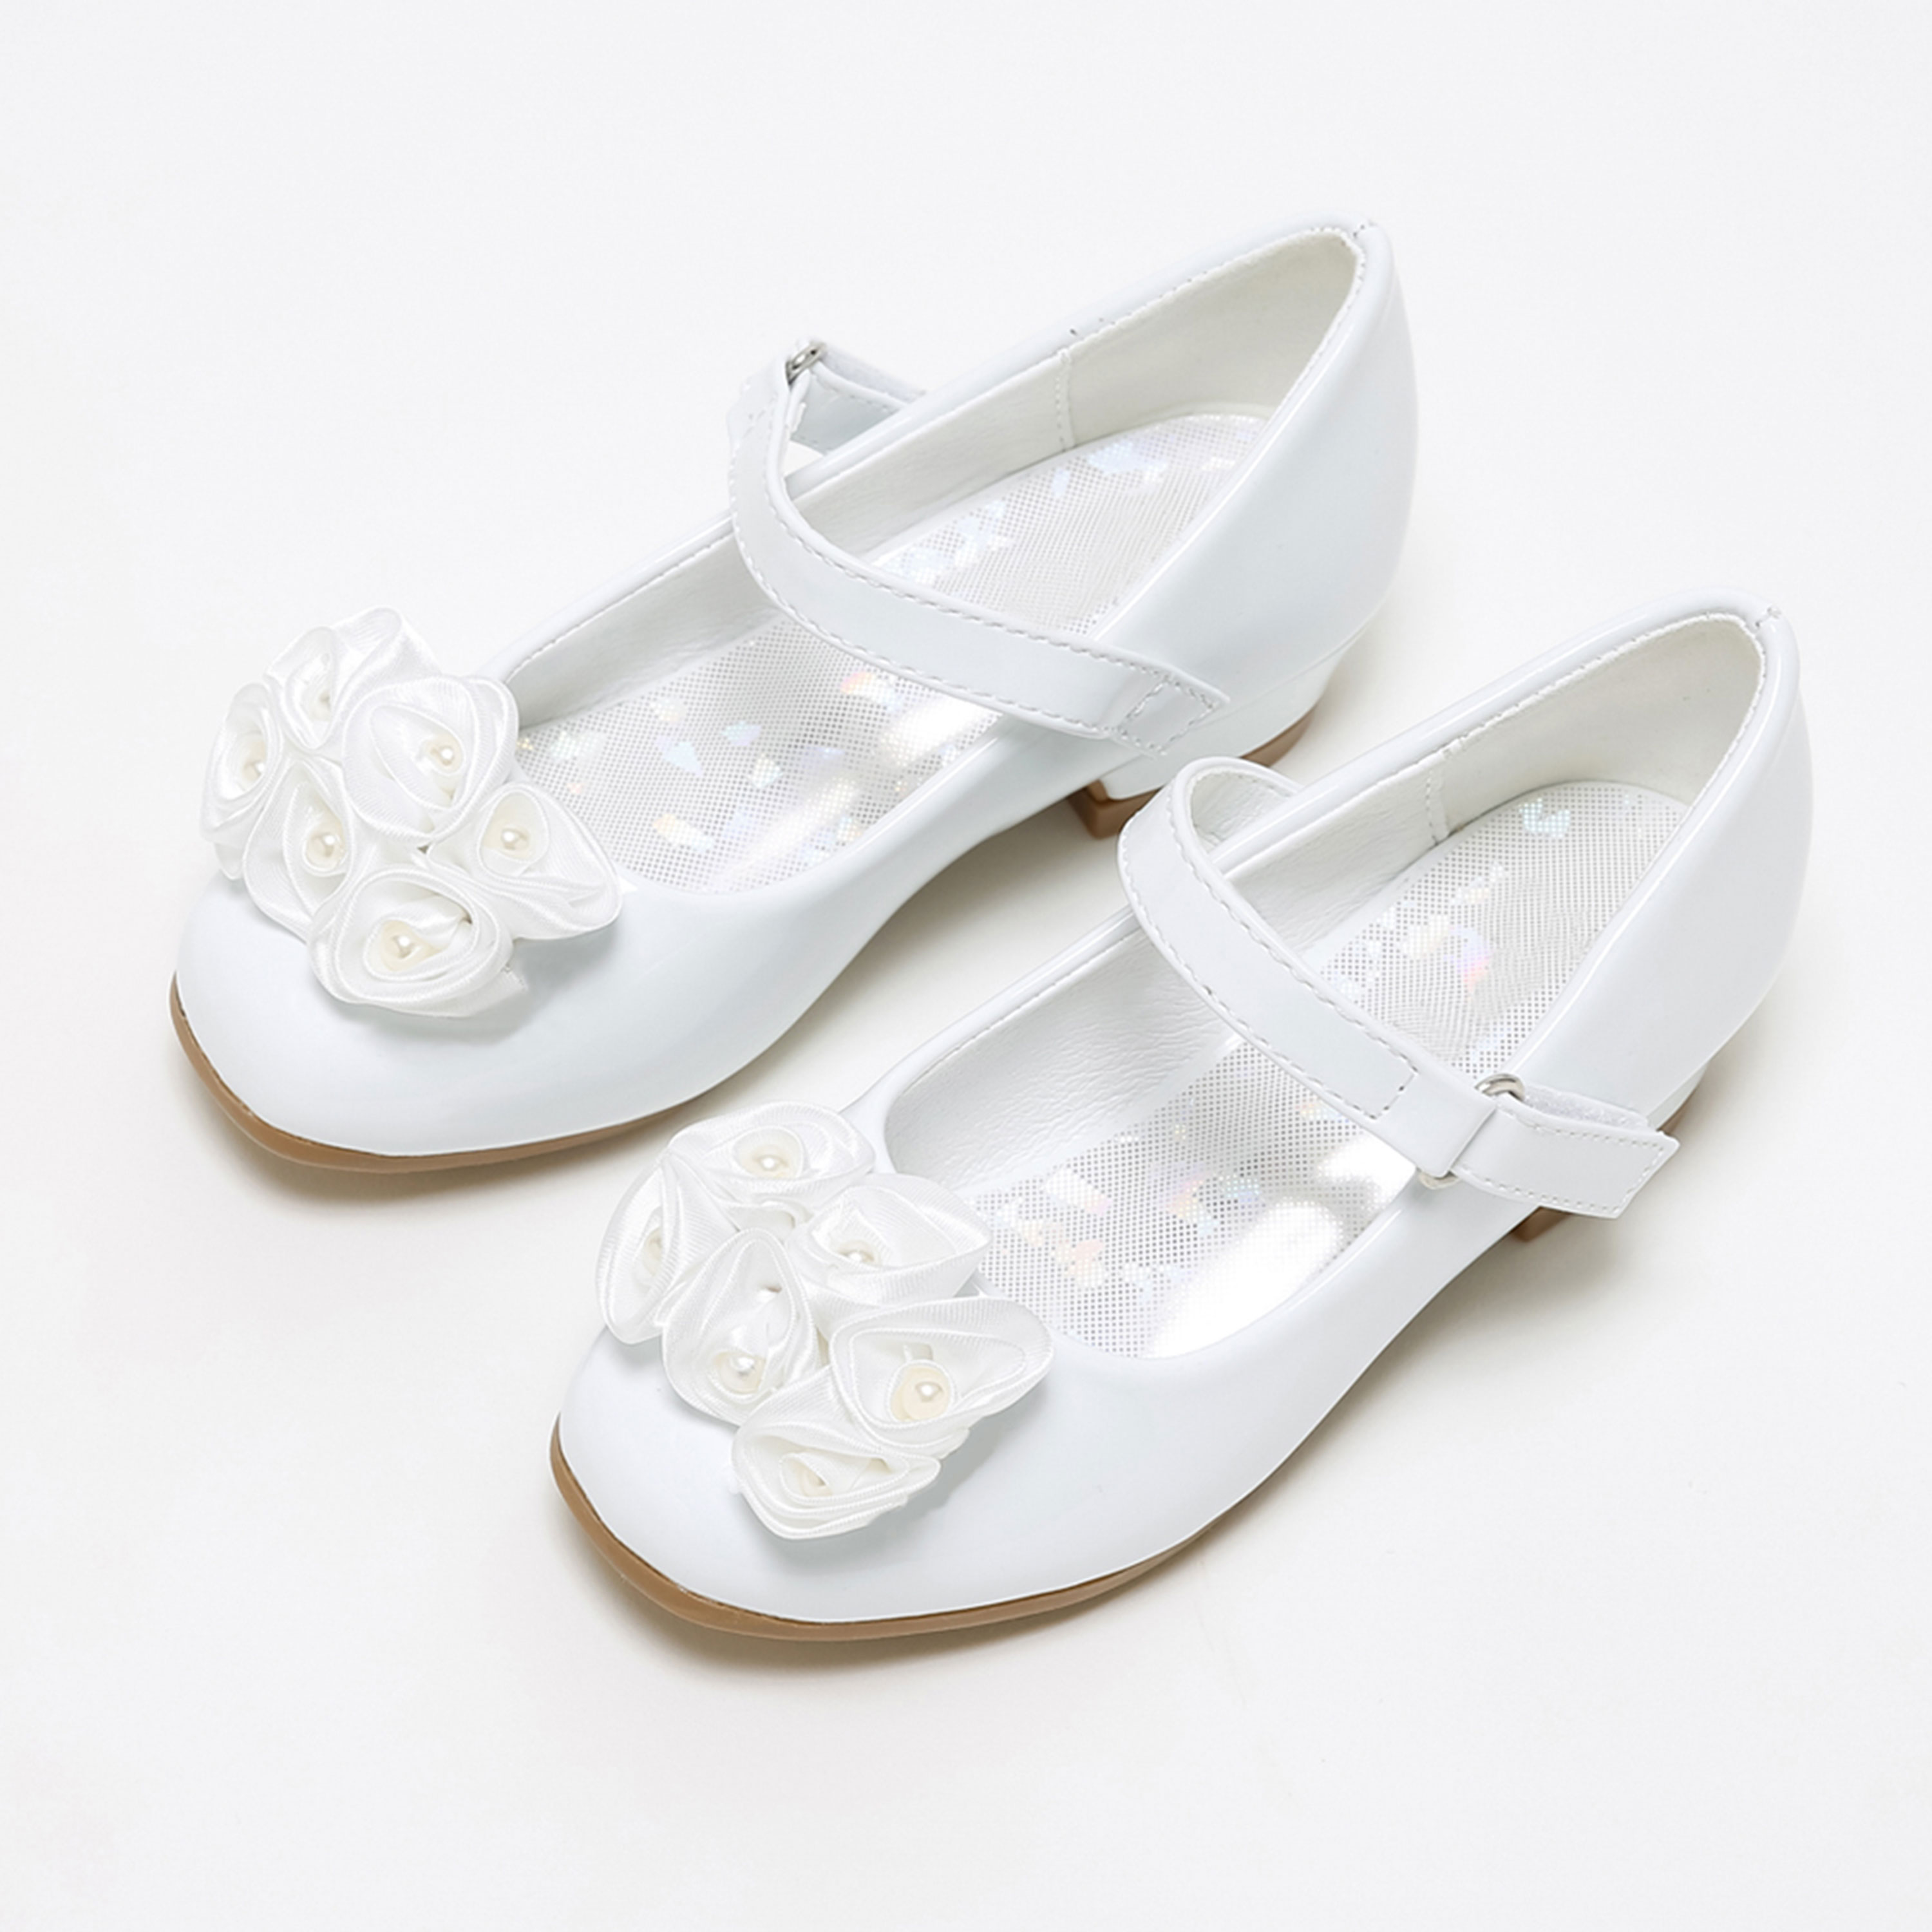 Classic Little Girls Shoes Breathable Mary Jane Flats for School Wedding Birthday Dress